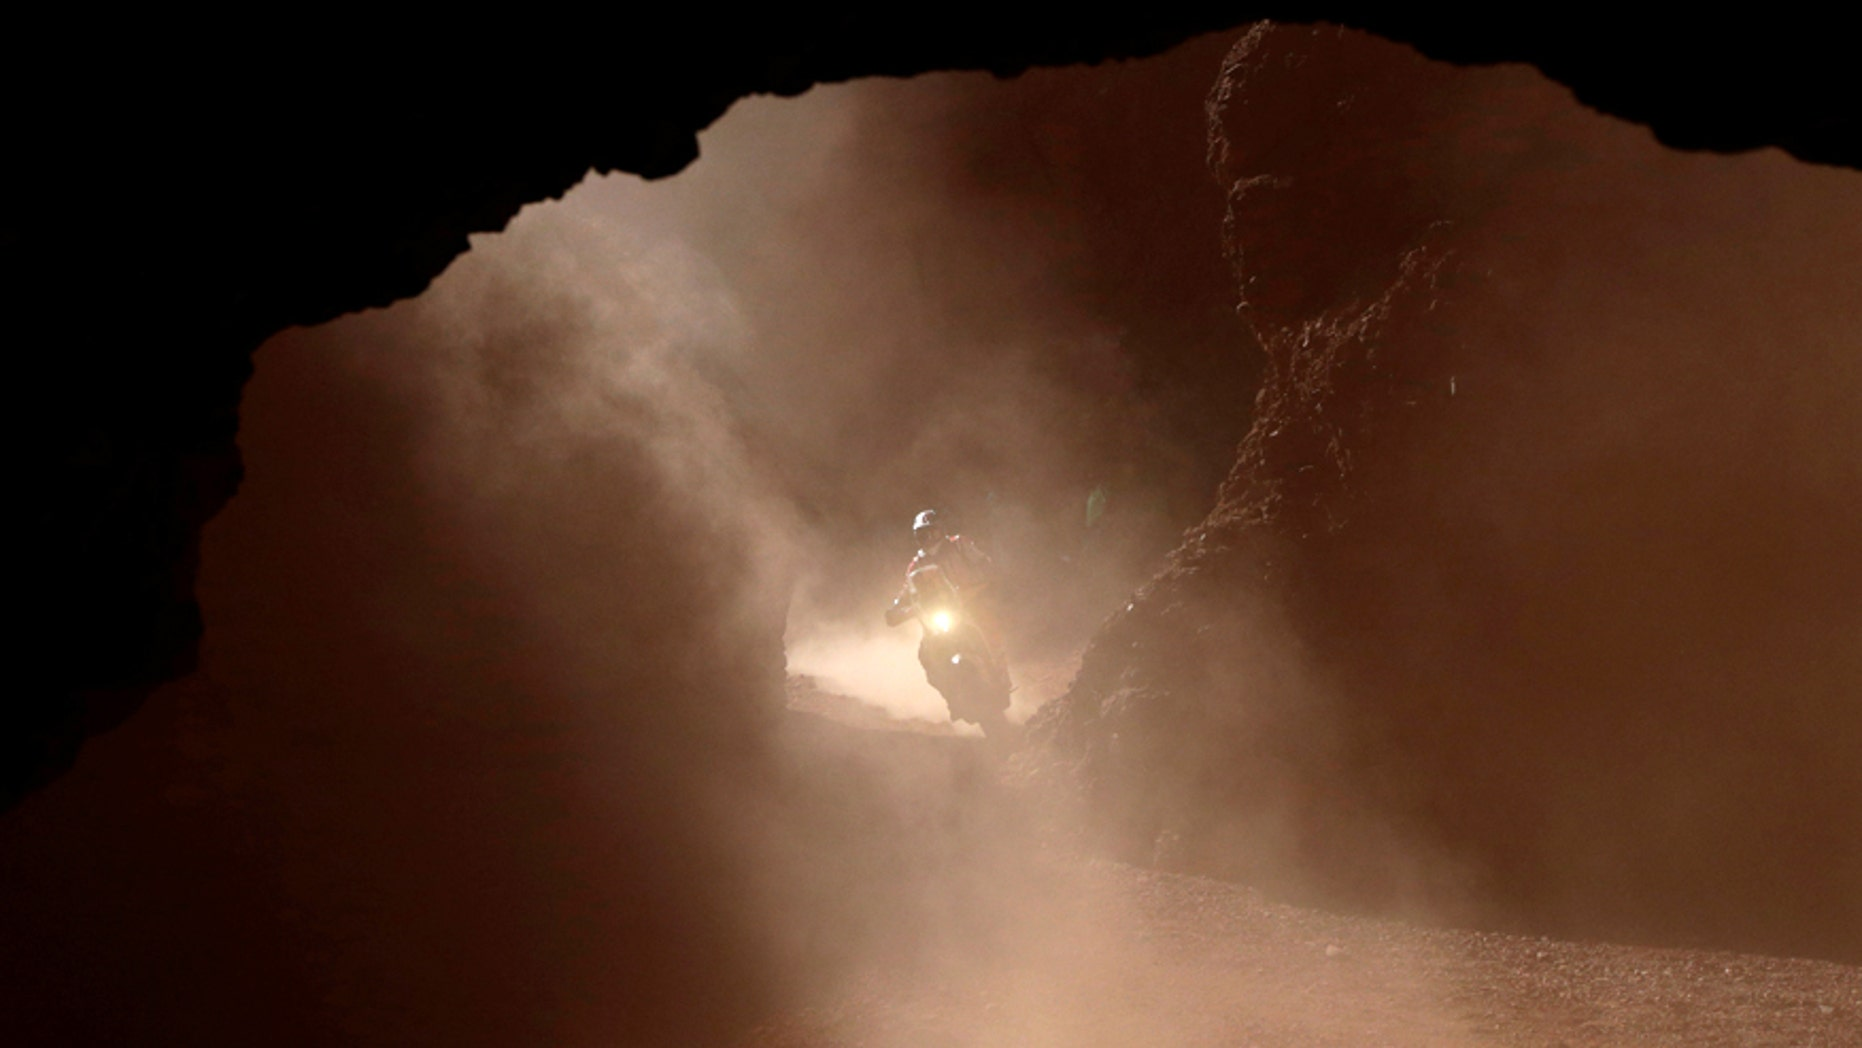 Ivan Jakes during stage 3 of the Dakar rally